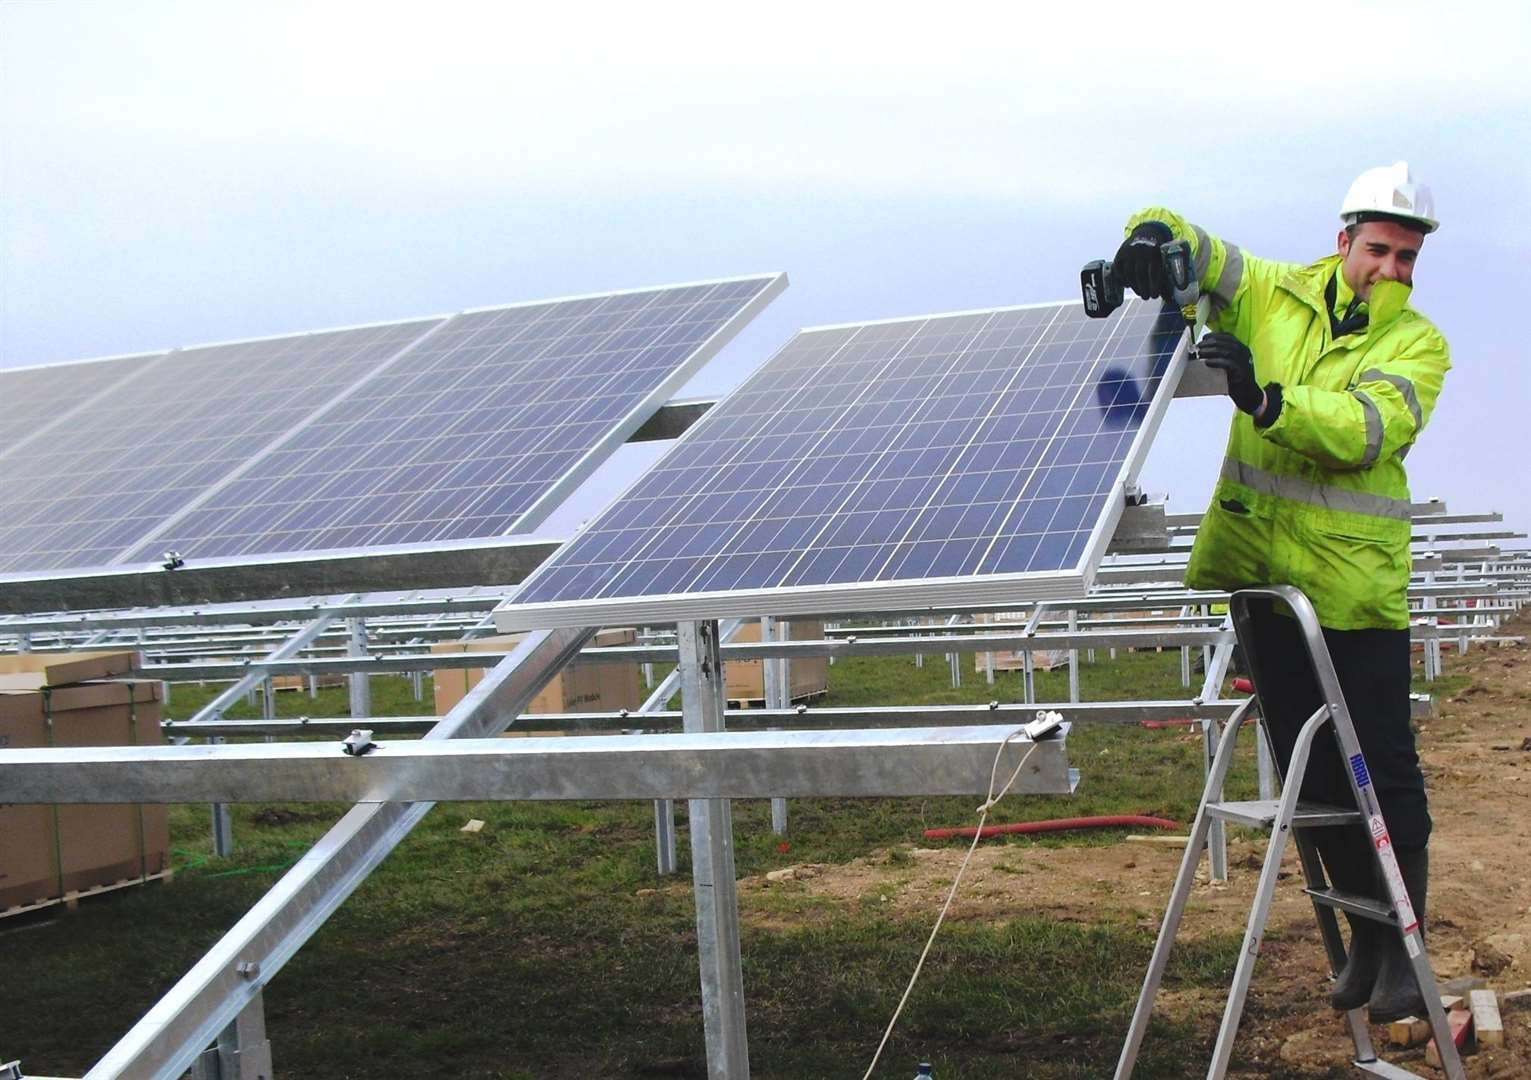 A second solar farm for Soham is one step closer after Cambridgeshire County Council's decision